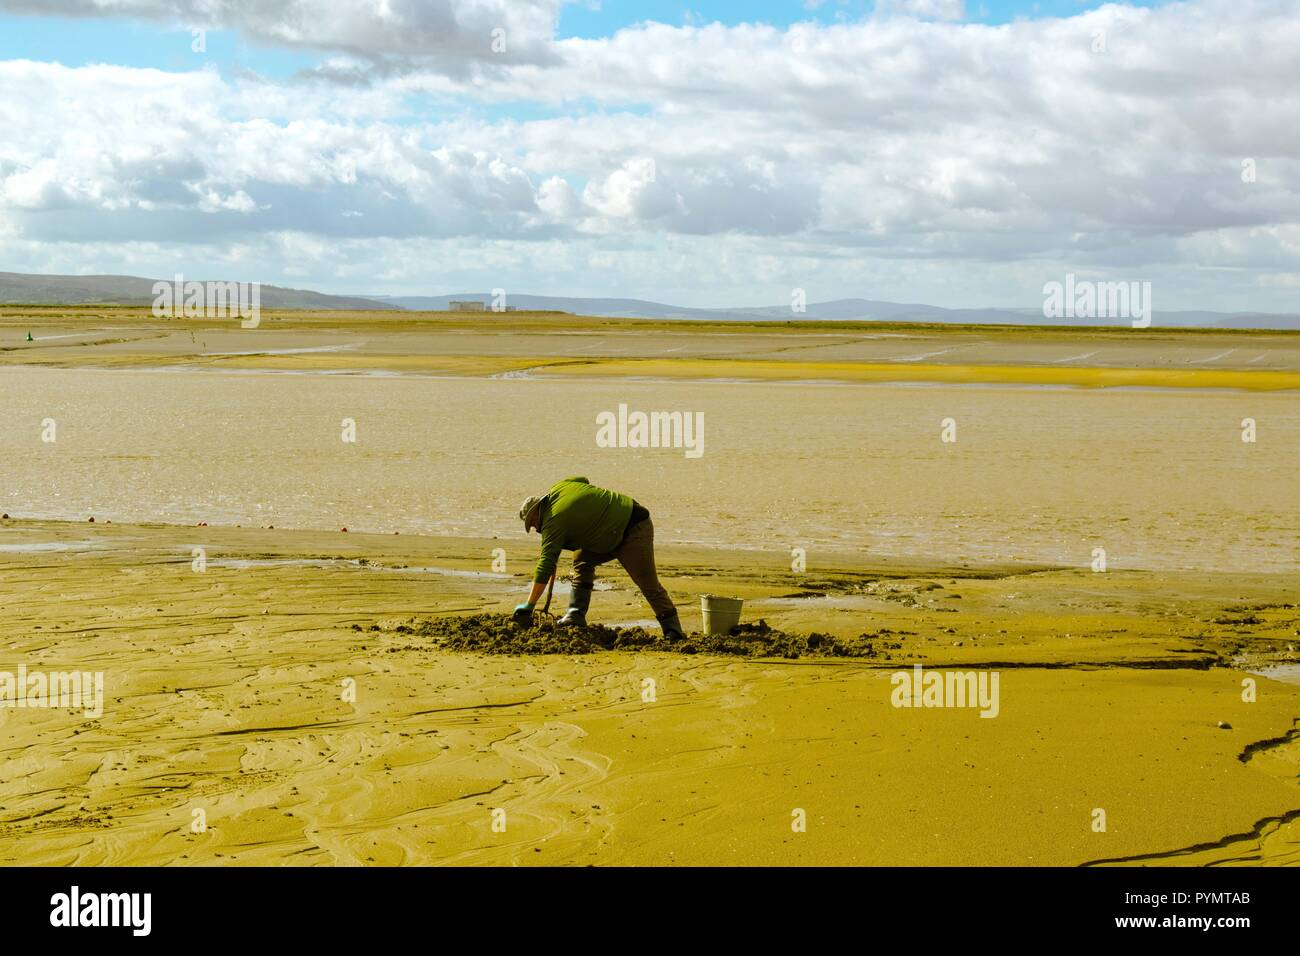 Man digging for fishing bait  on beach - Stock Image